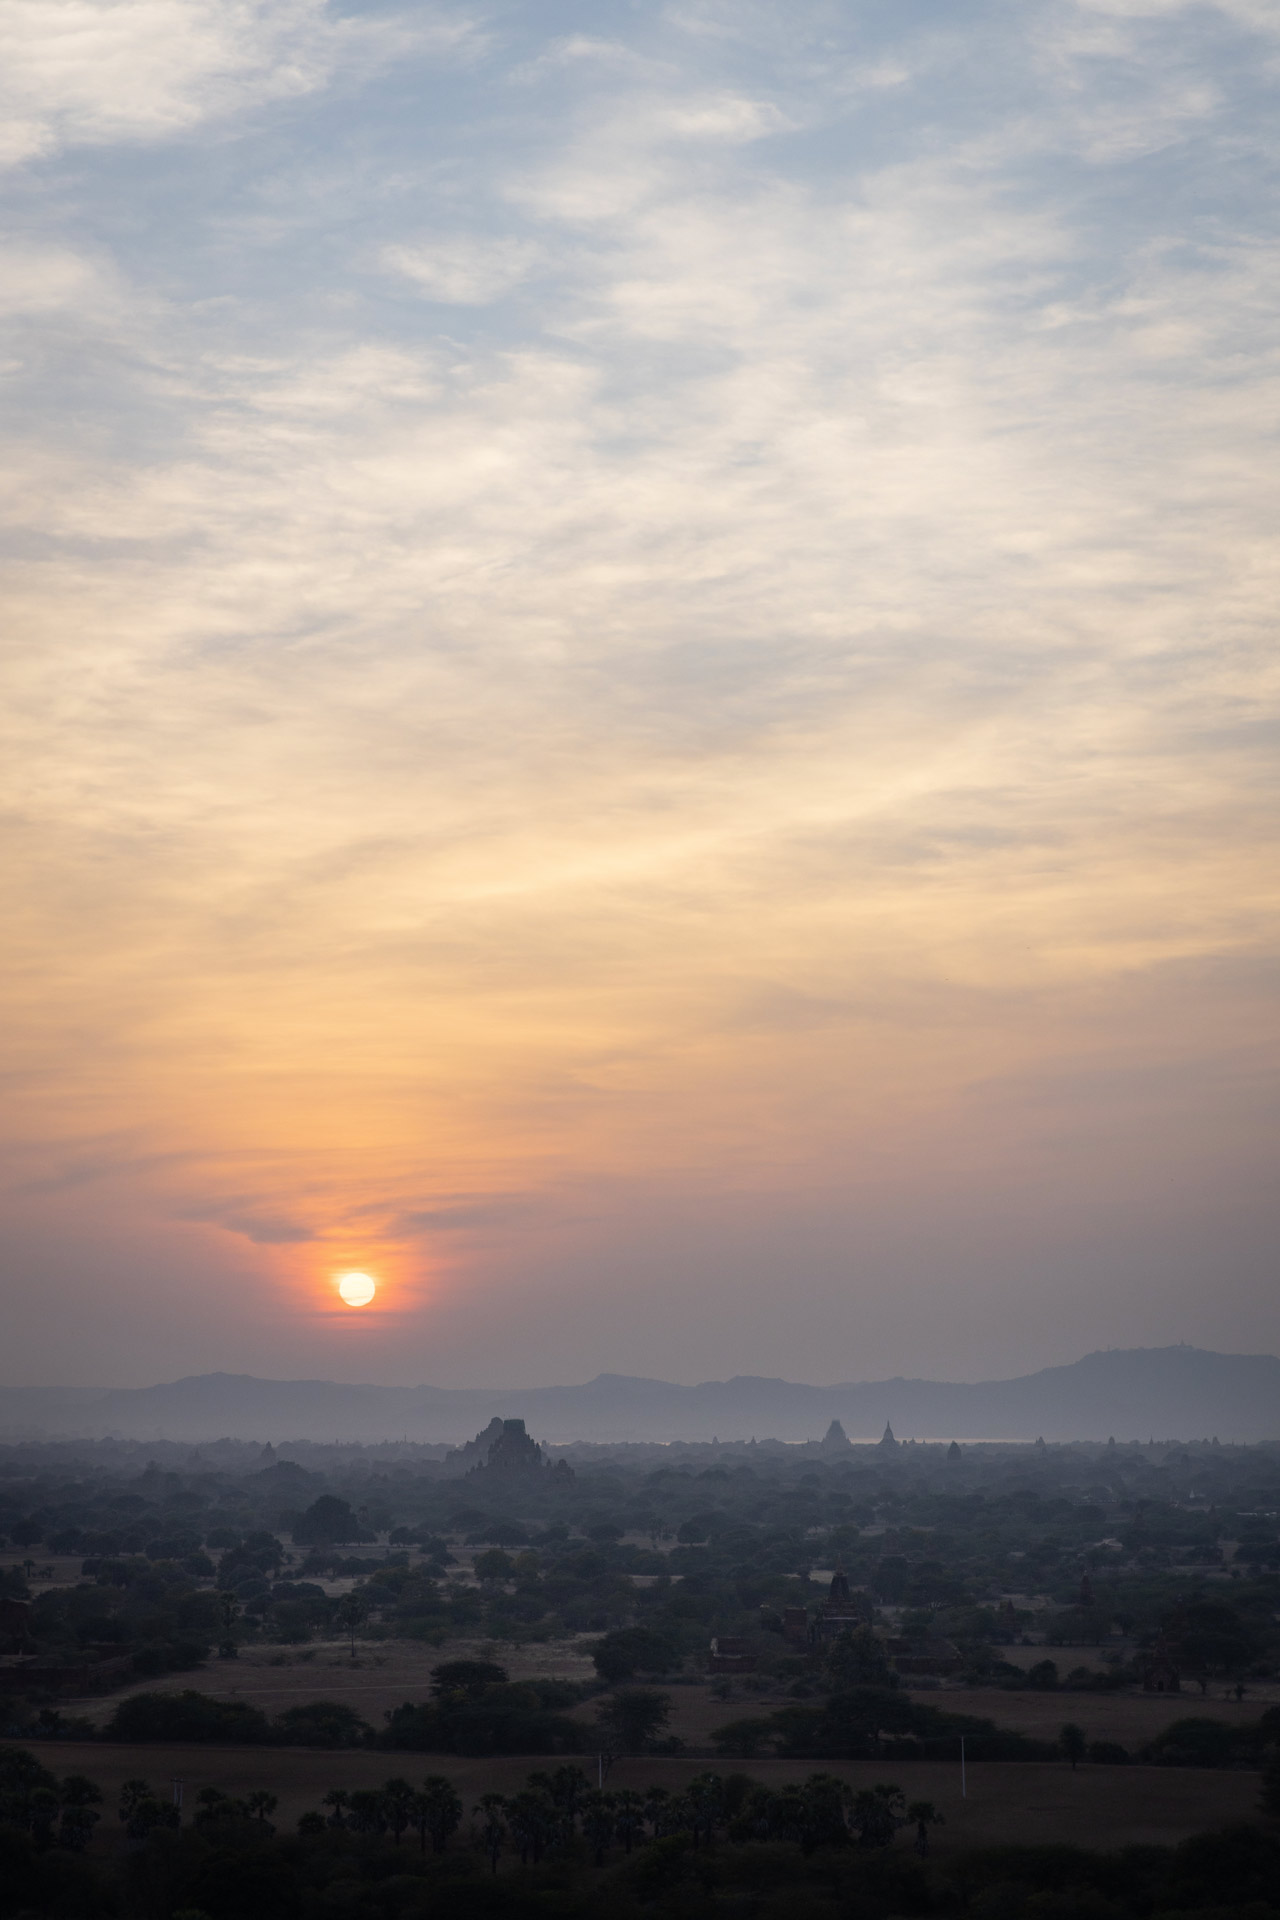 In beautiful Bagan, Looking for magic! Sunset and pagodas